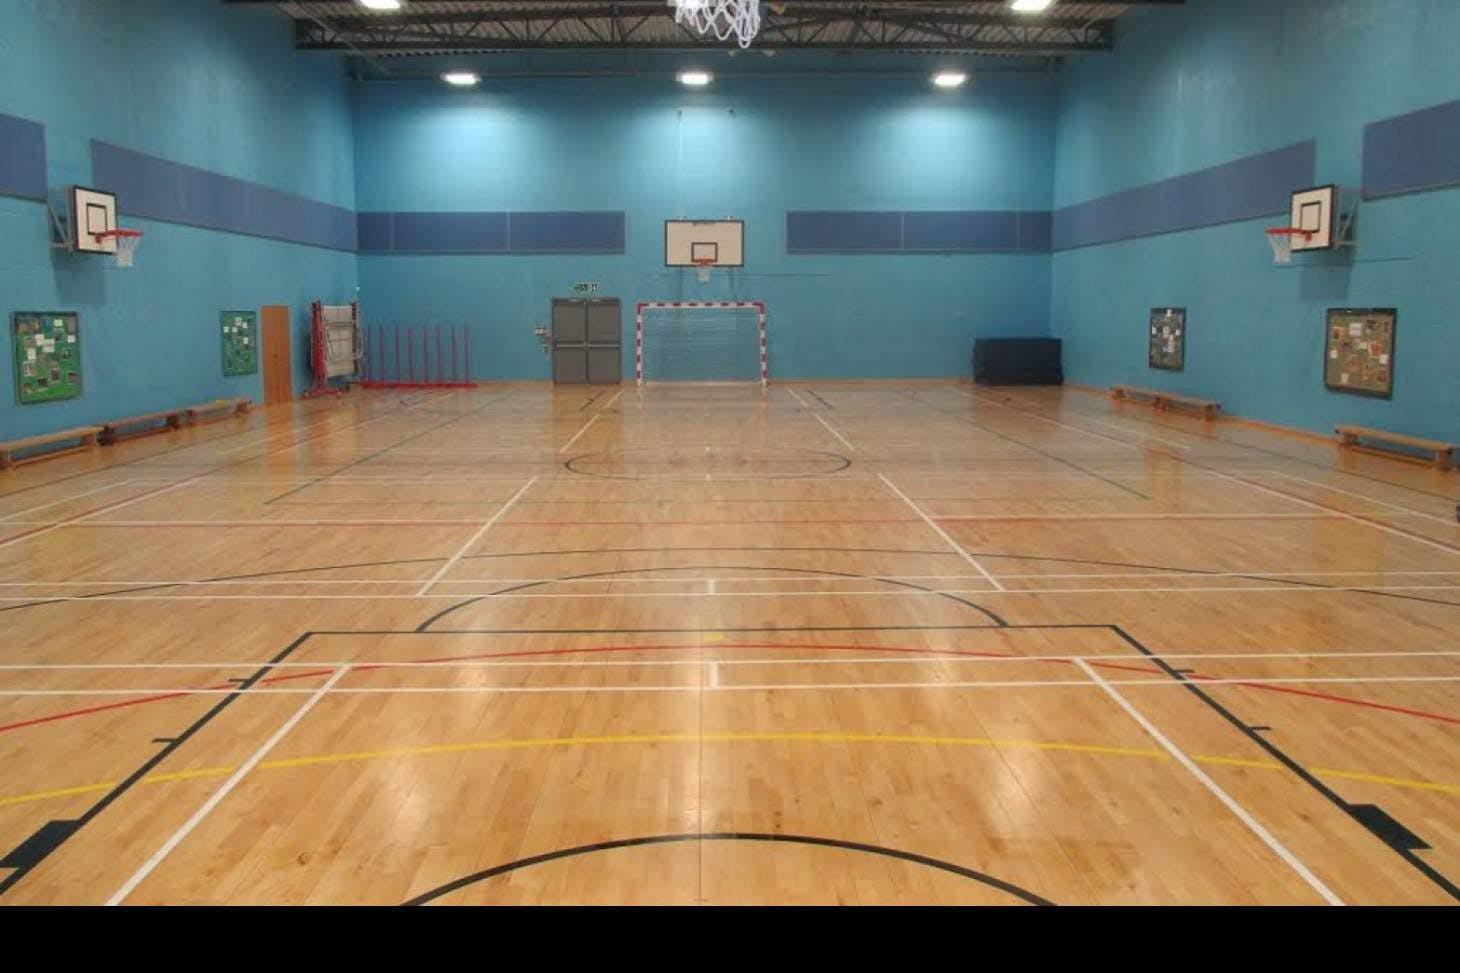 Prendergast Vale School Indoor netball court